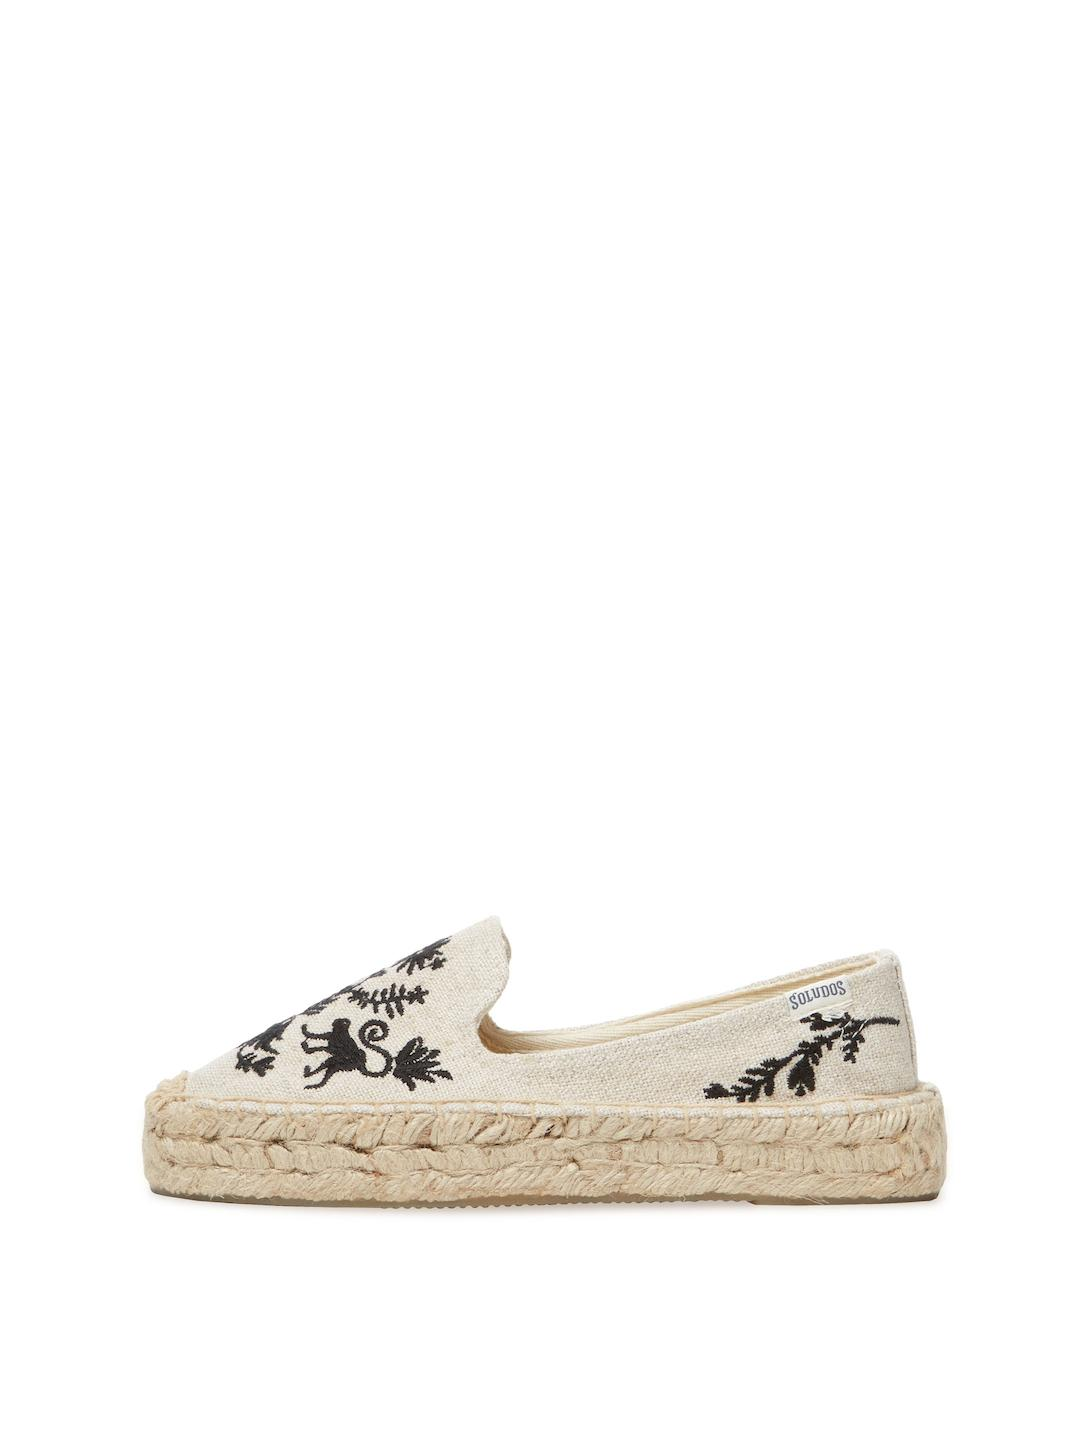 daebeee2a4f2 Lyst - Soludos Otomi Embroidered Platform Smoking Slipper in Natural